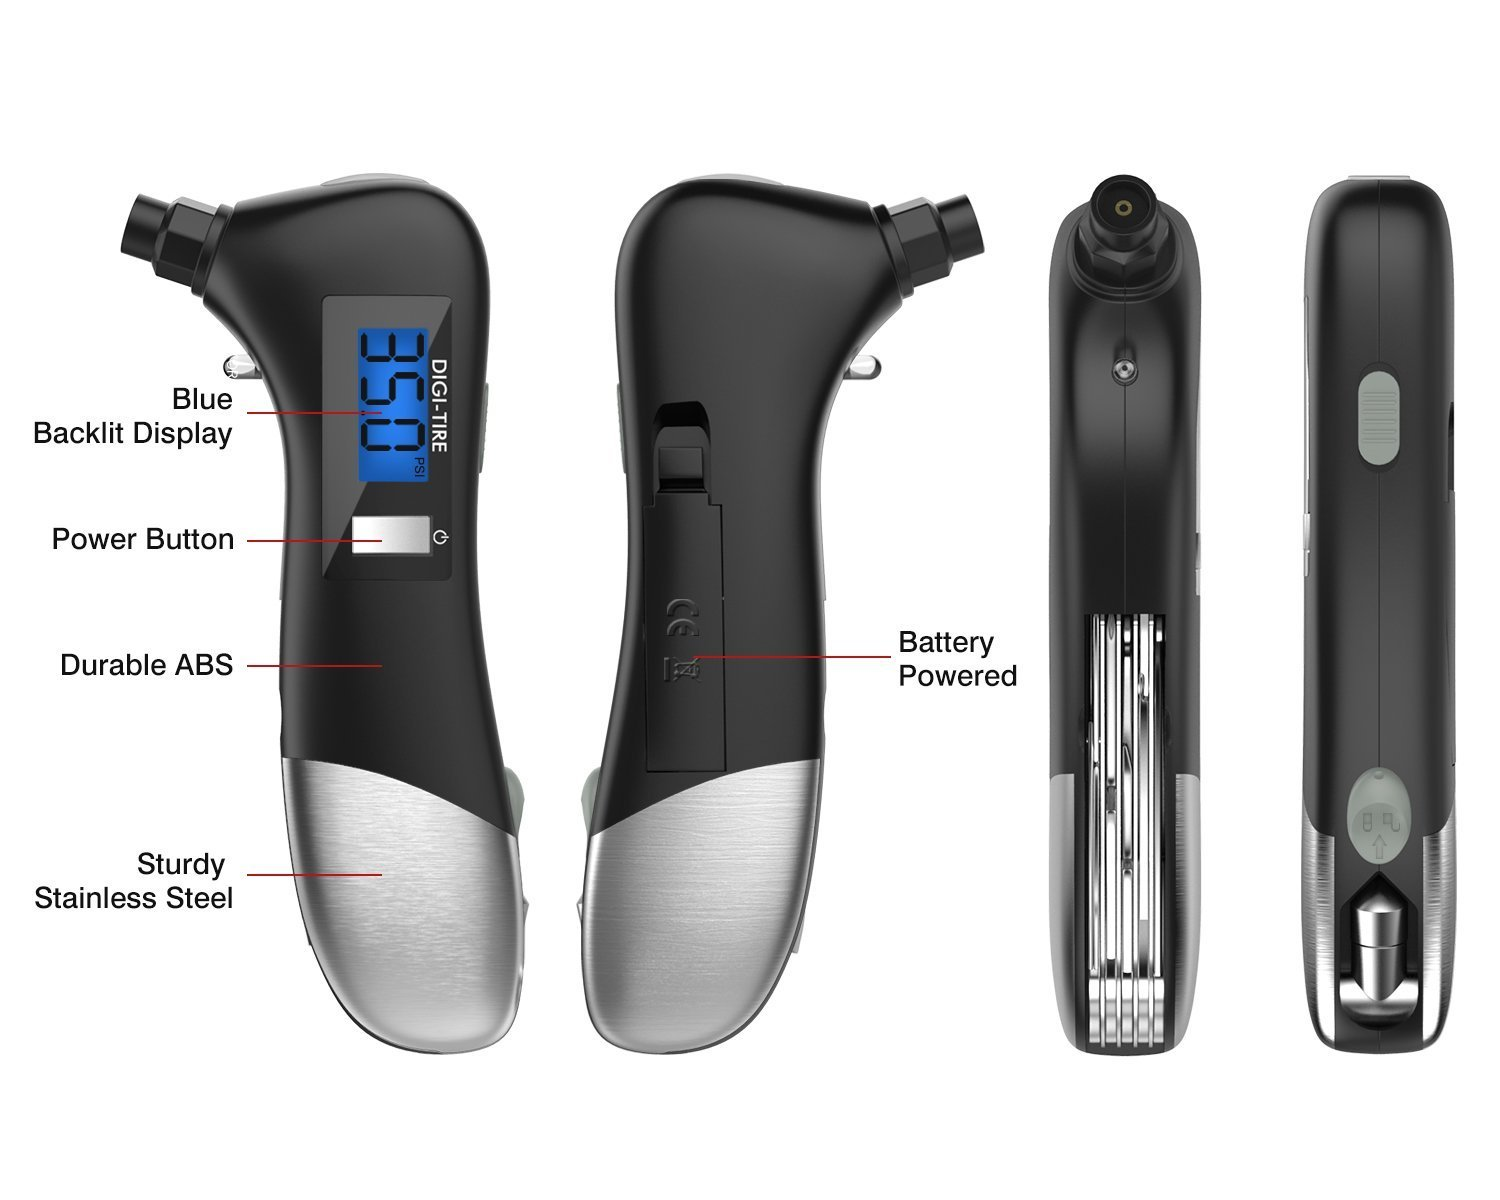 Brightt 9-in-1 Digital Tire Pressure Gauge 150PSI with Multi functional Rescue Tools of LED Flashlight, Car Hammer, Seatbelt Cutter, Screw Drivers, Scissors and Pliers for Car, All Vehicles by Brightt (Image #6)